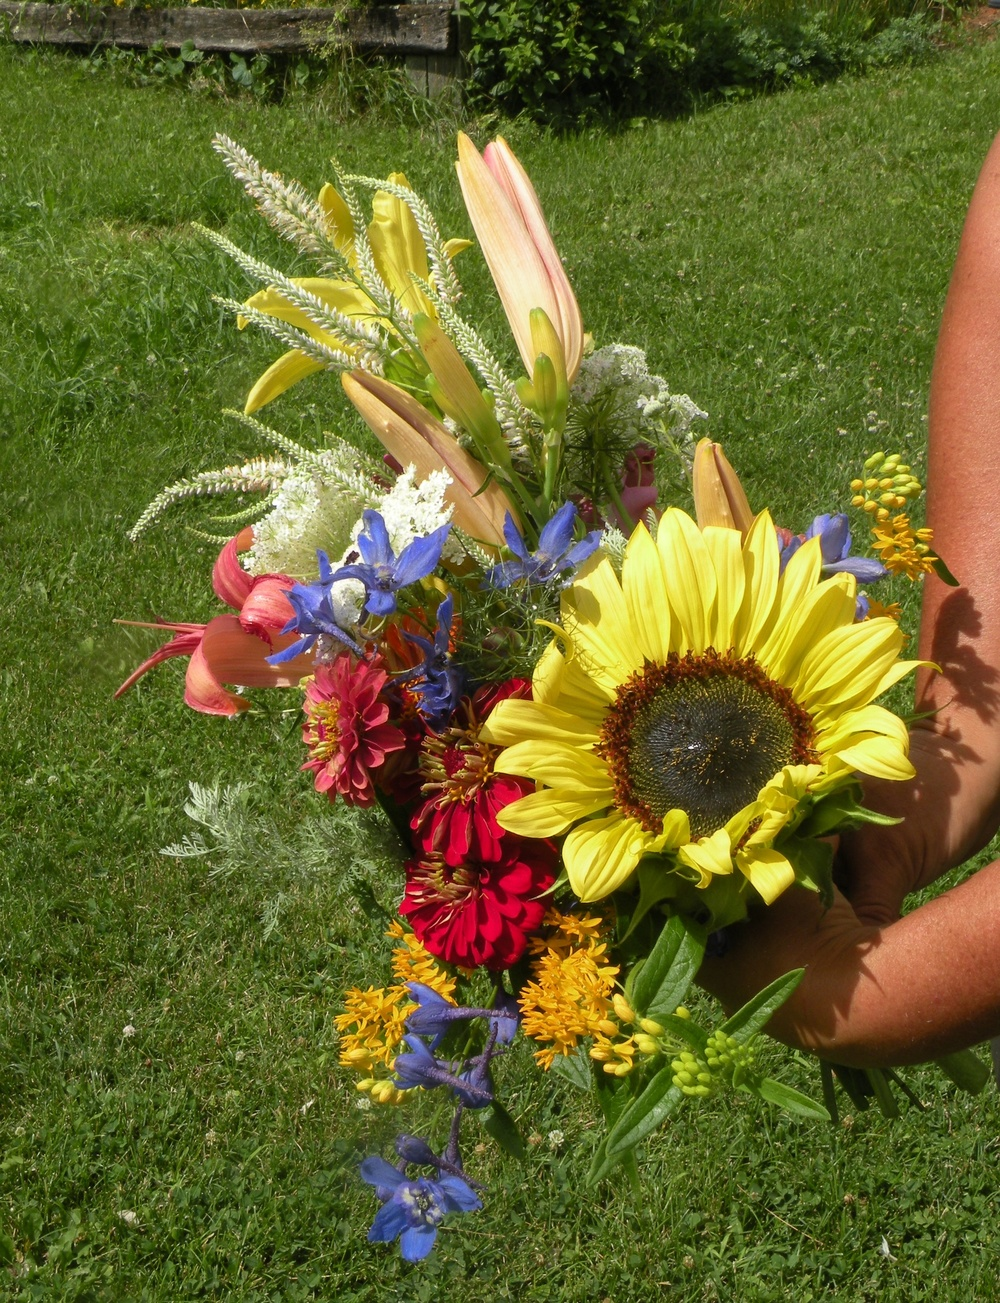 July Flower CSA bouquet. From sunflowers to culver's root, a feast for pollinators abound in the petals. Photo by Rob McClure